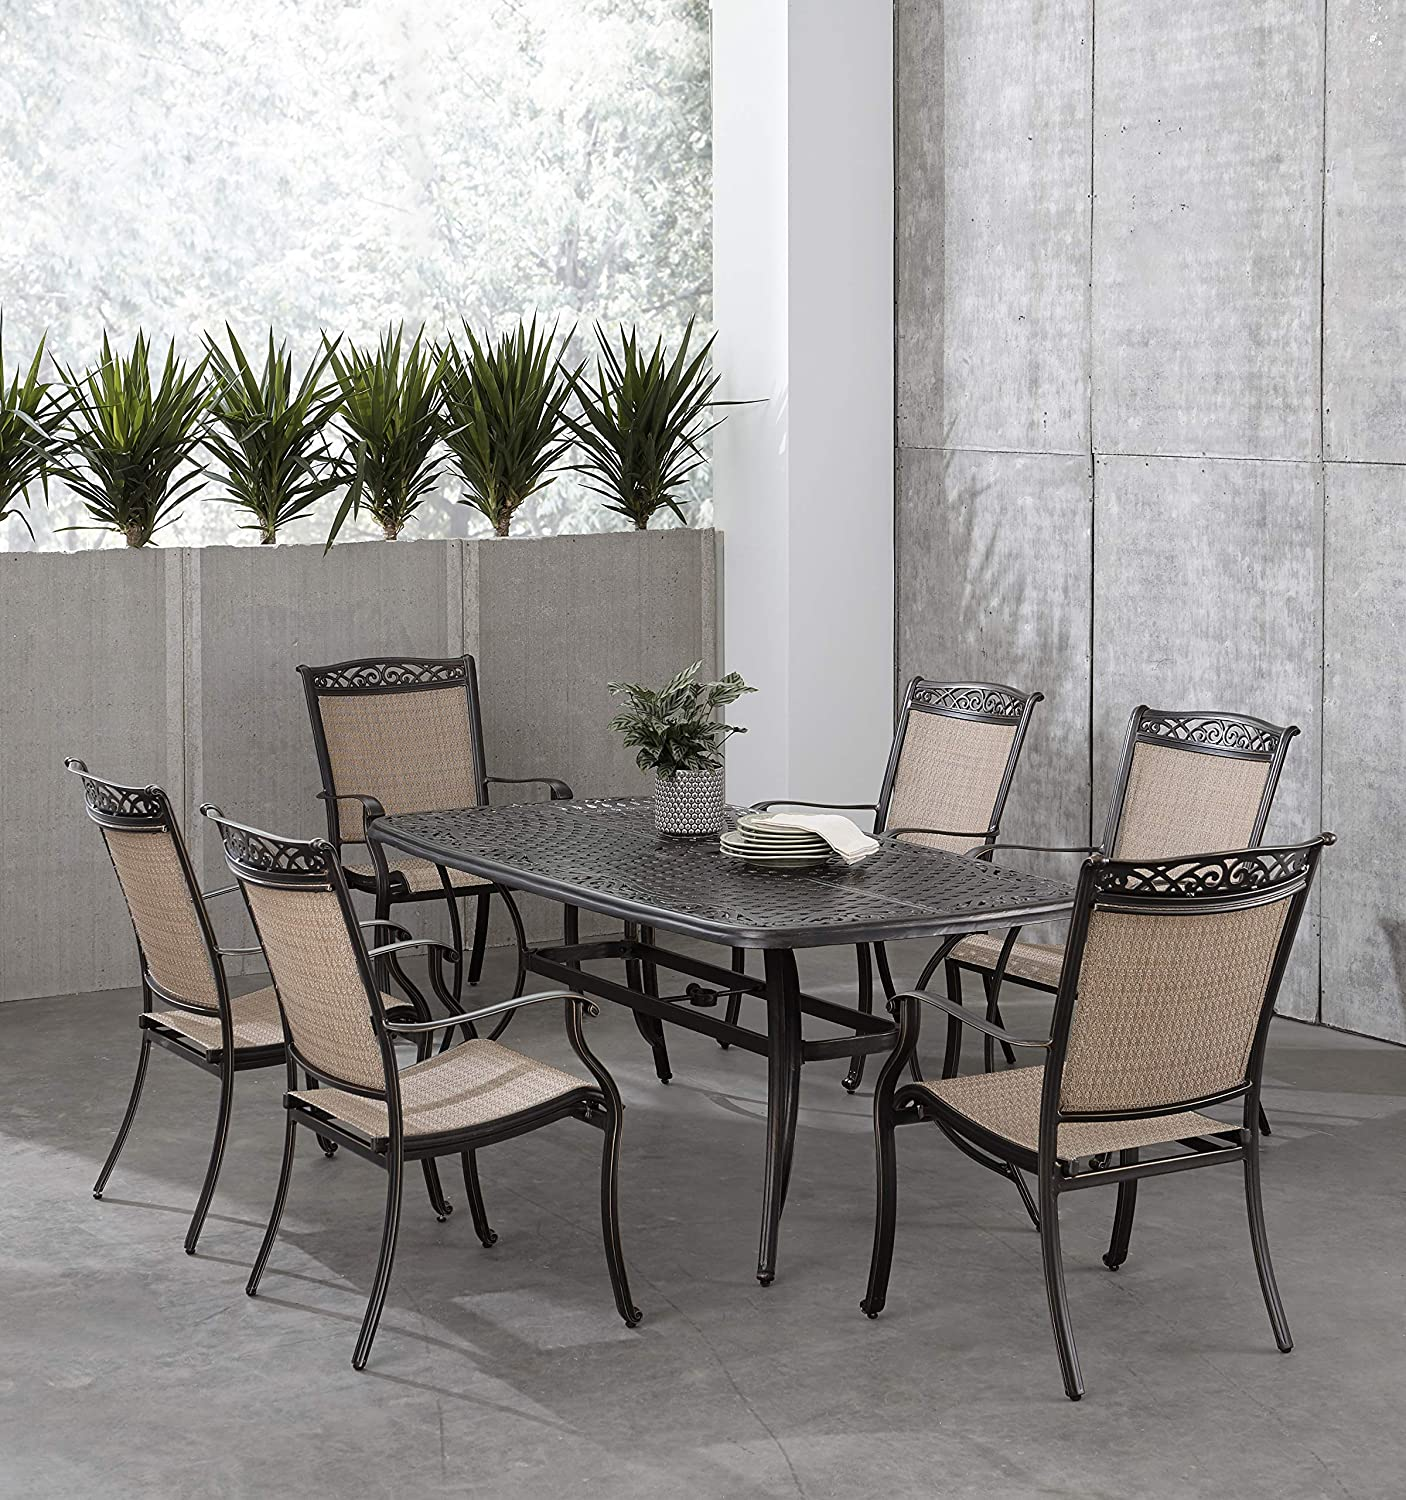 Hanover Fontana 7-Piece Dining Set with 6 Sling Chairs and a 38-in. x 72-in. Cast-Top Table, FNTDN7PCC Outdoor Furniture, Tan